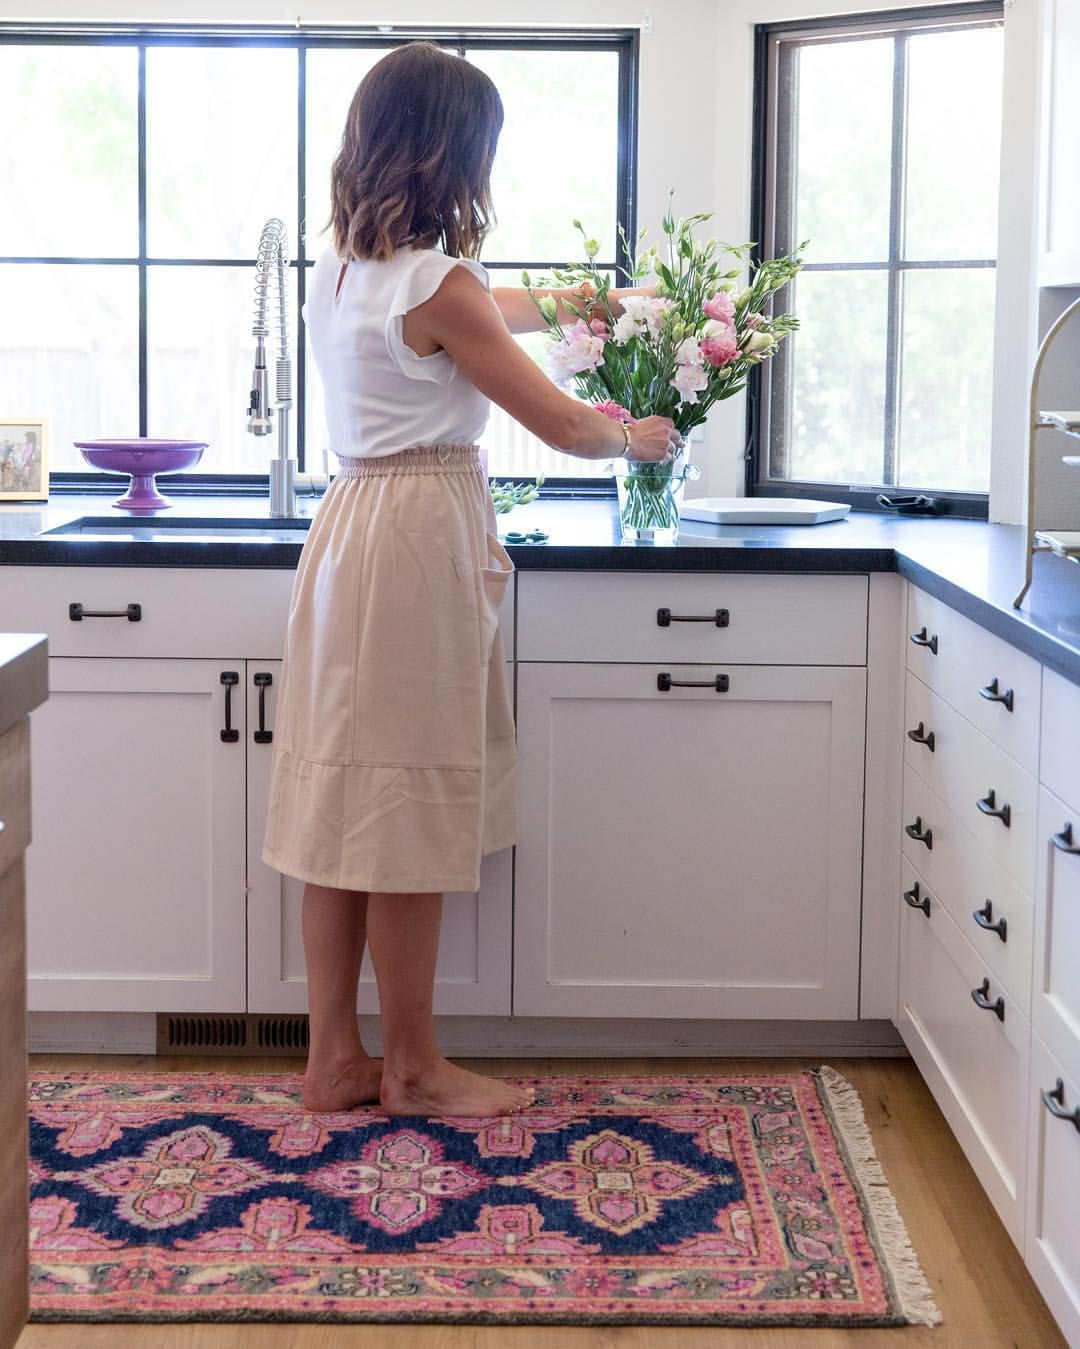 Kitchen Rugs 25 Stunning Picture For Choosing The Perfect Kitchen Rugs